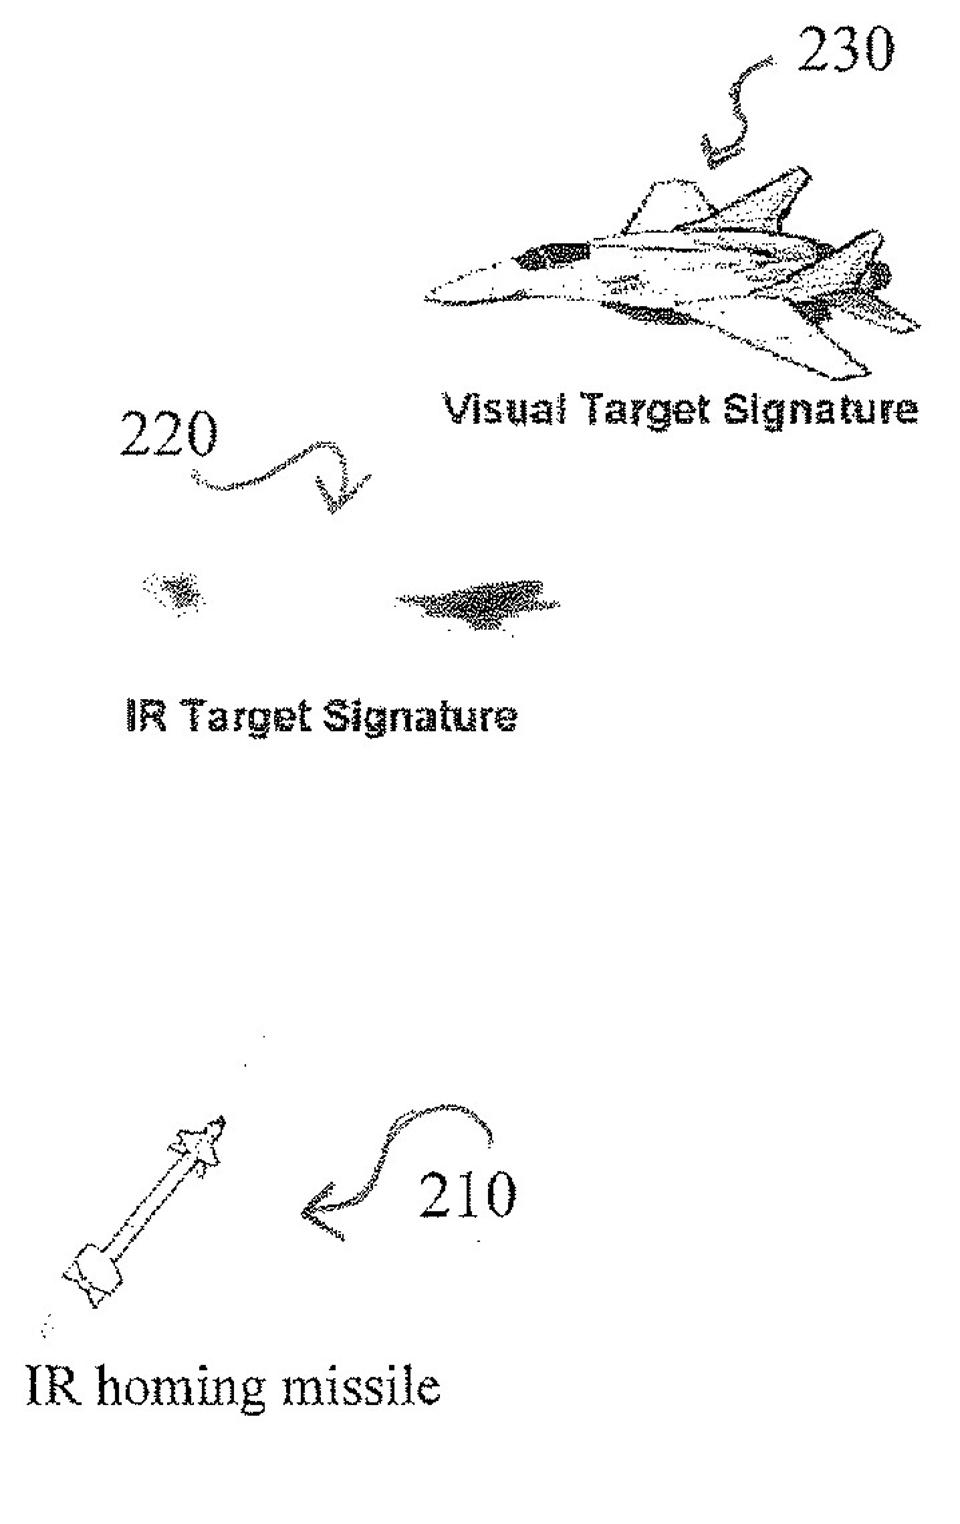 A drawing from a patent showing a laser-generated decoy drawing a heat-seeking missile away from an aircraft